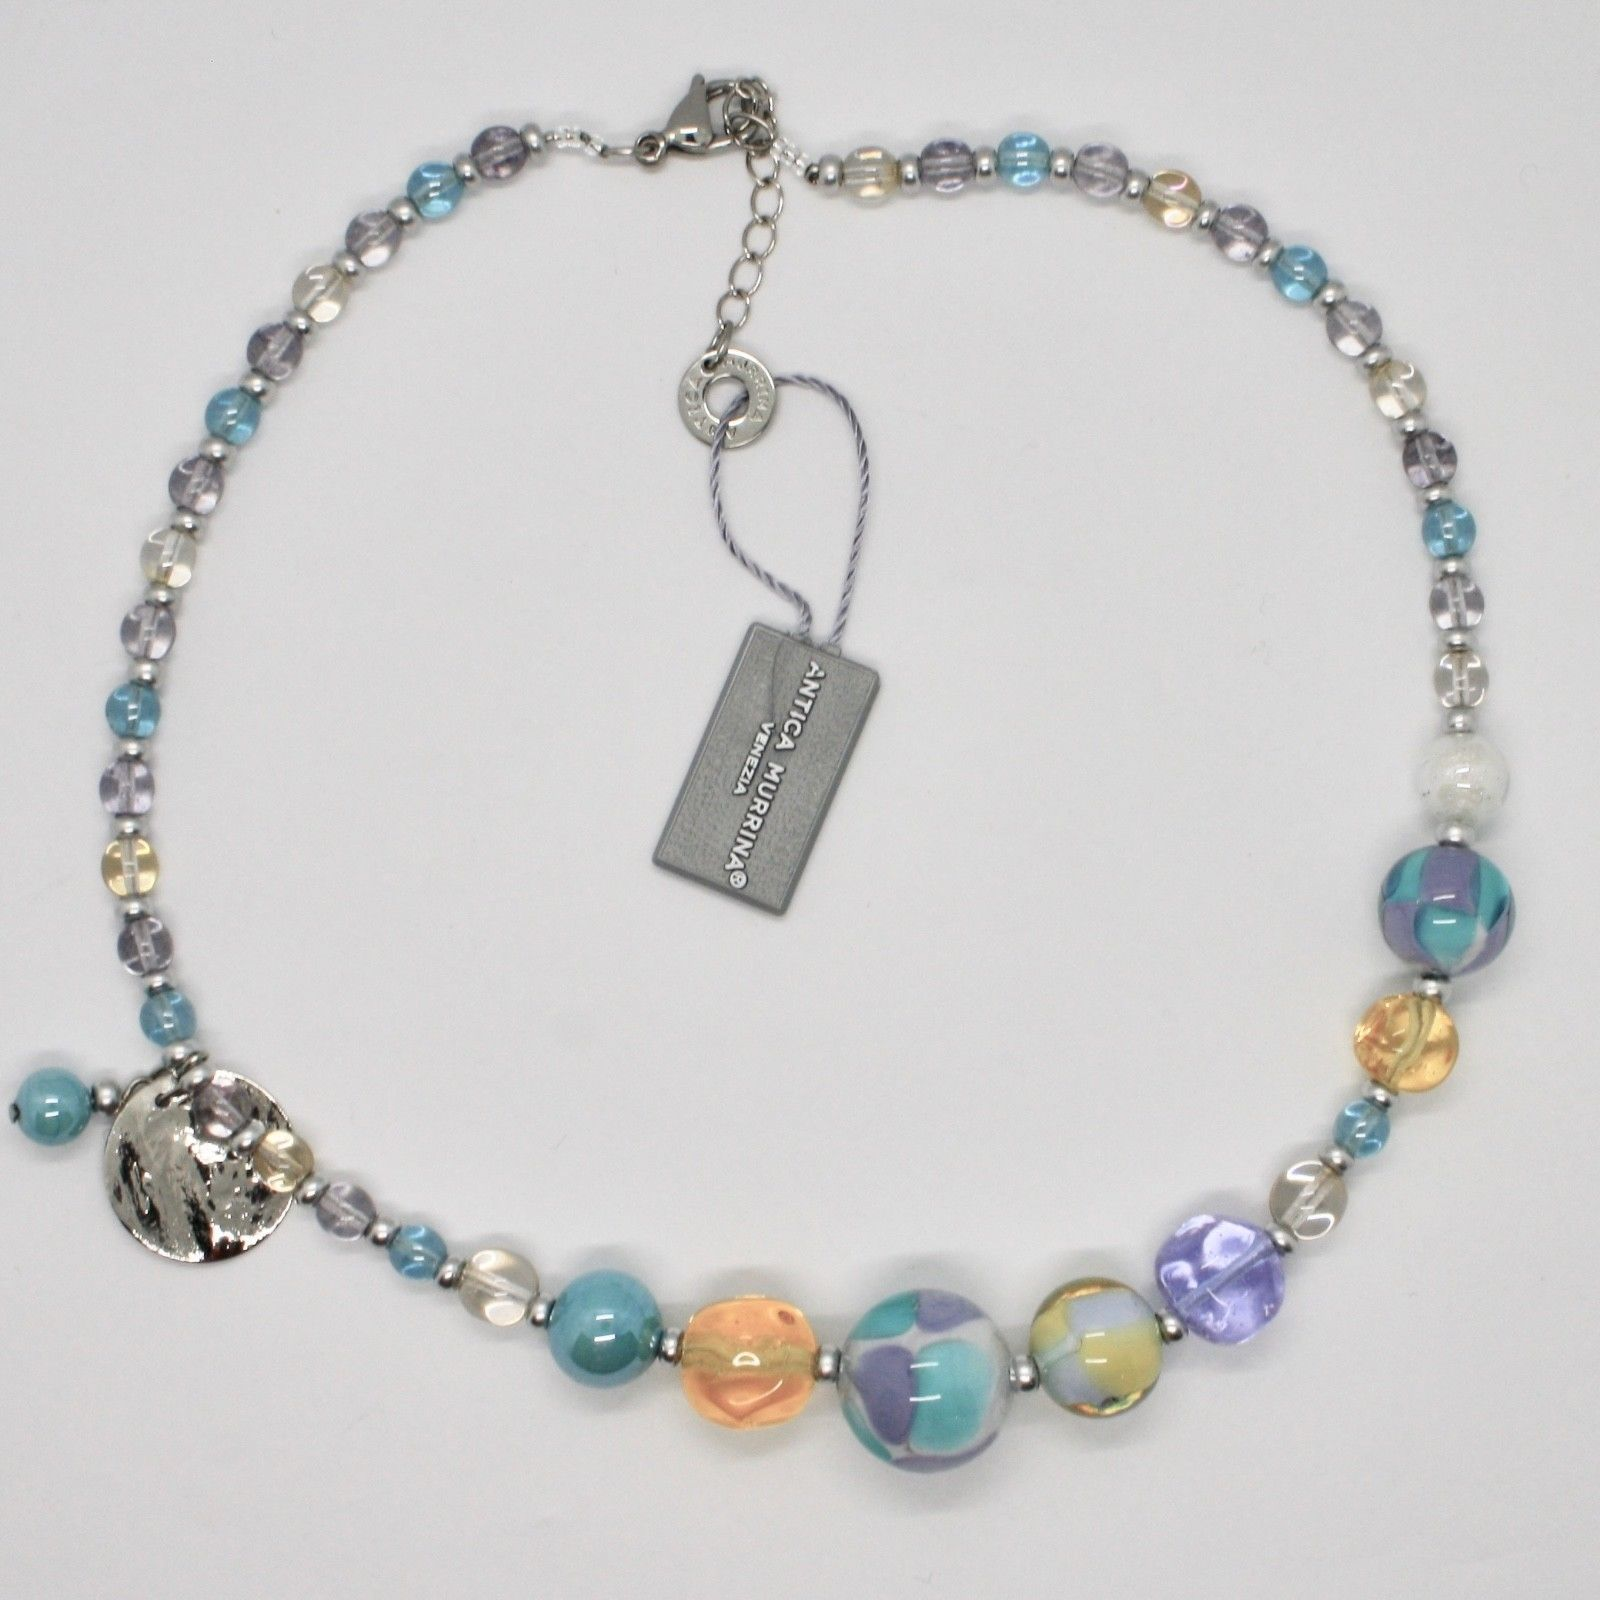 NECKLACE ANTICA MURRINA VENEZIA WITH MURANO GLASS BLUE PURPLE LIGHT COA84A07